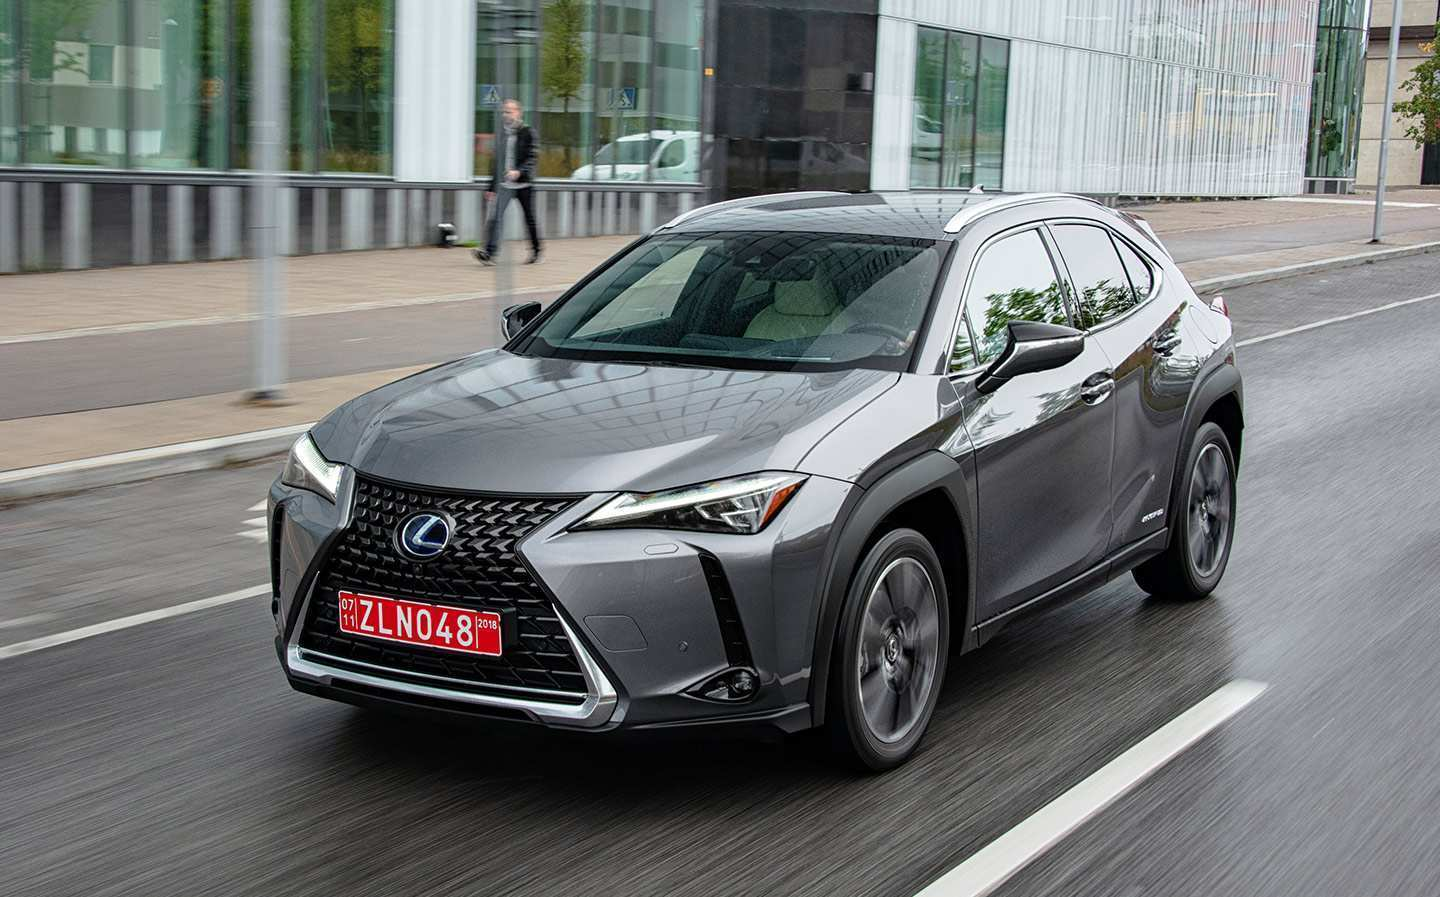 65 All New Lexus Ux 2019 Price History